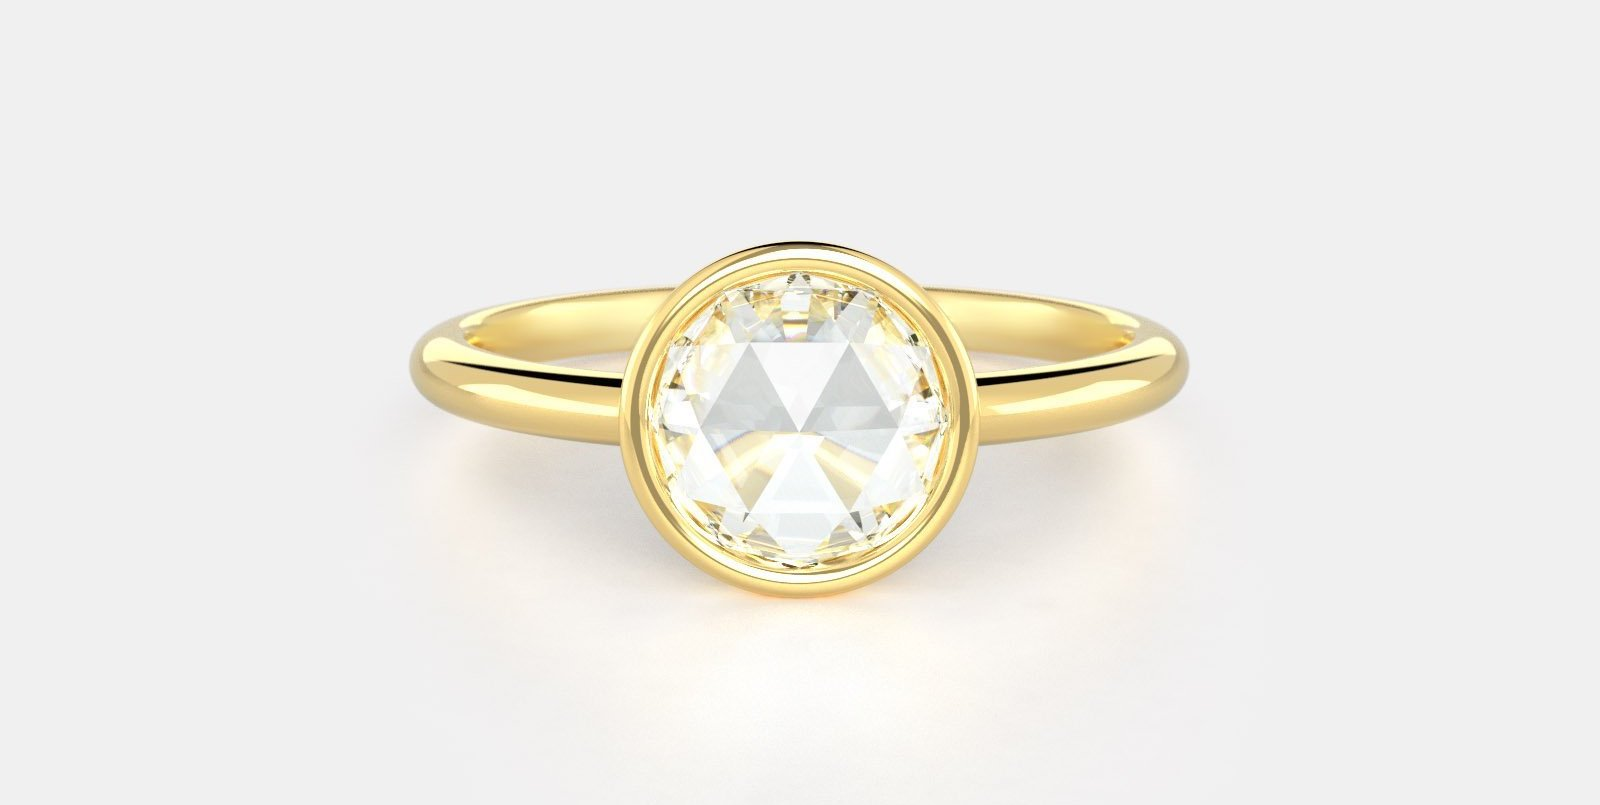 Billie. No. 5 a rose cut diamond set in a yellow gold band.